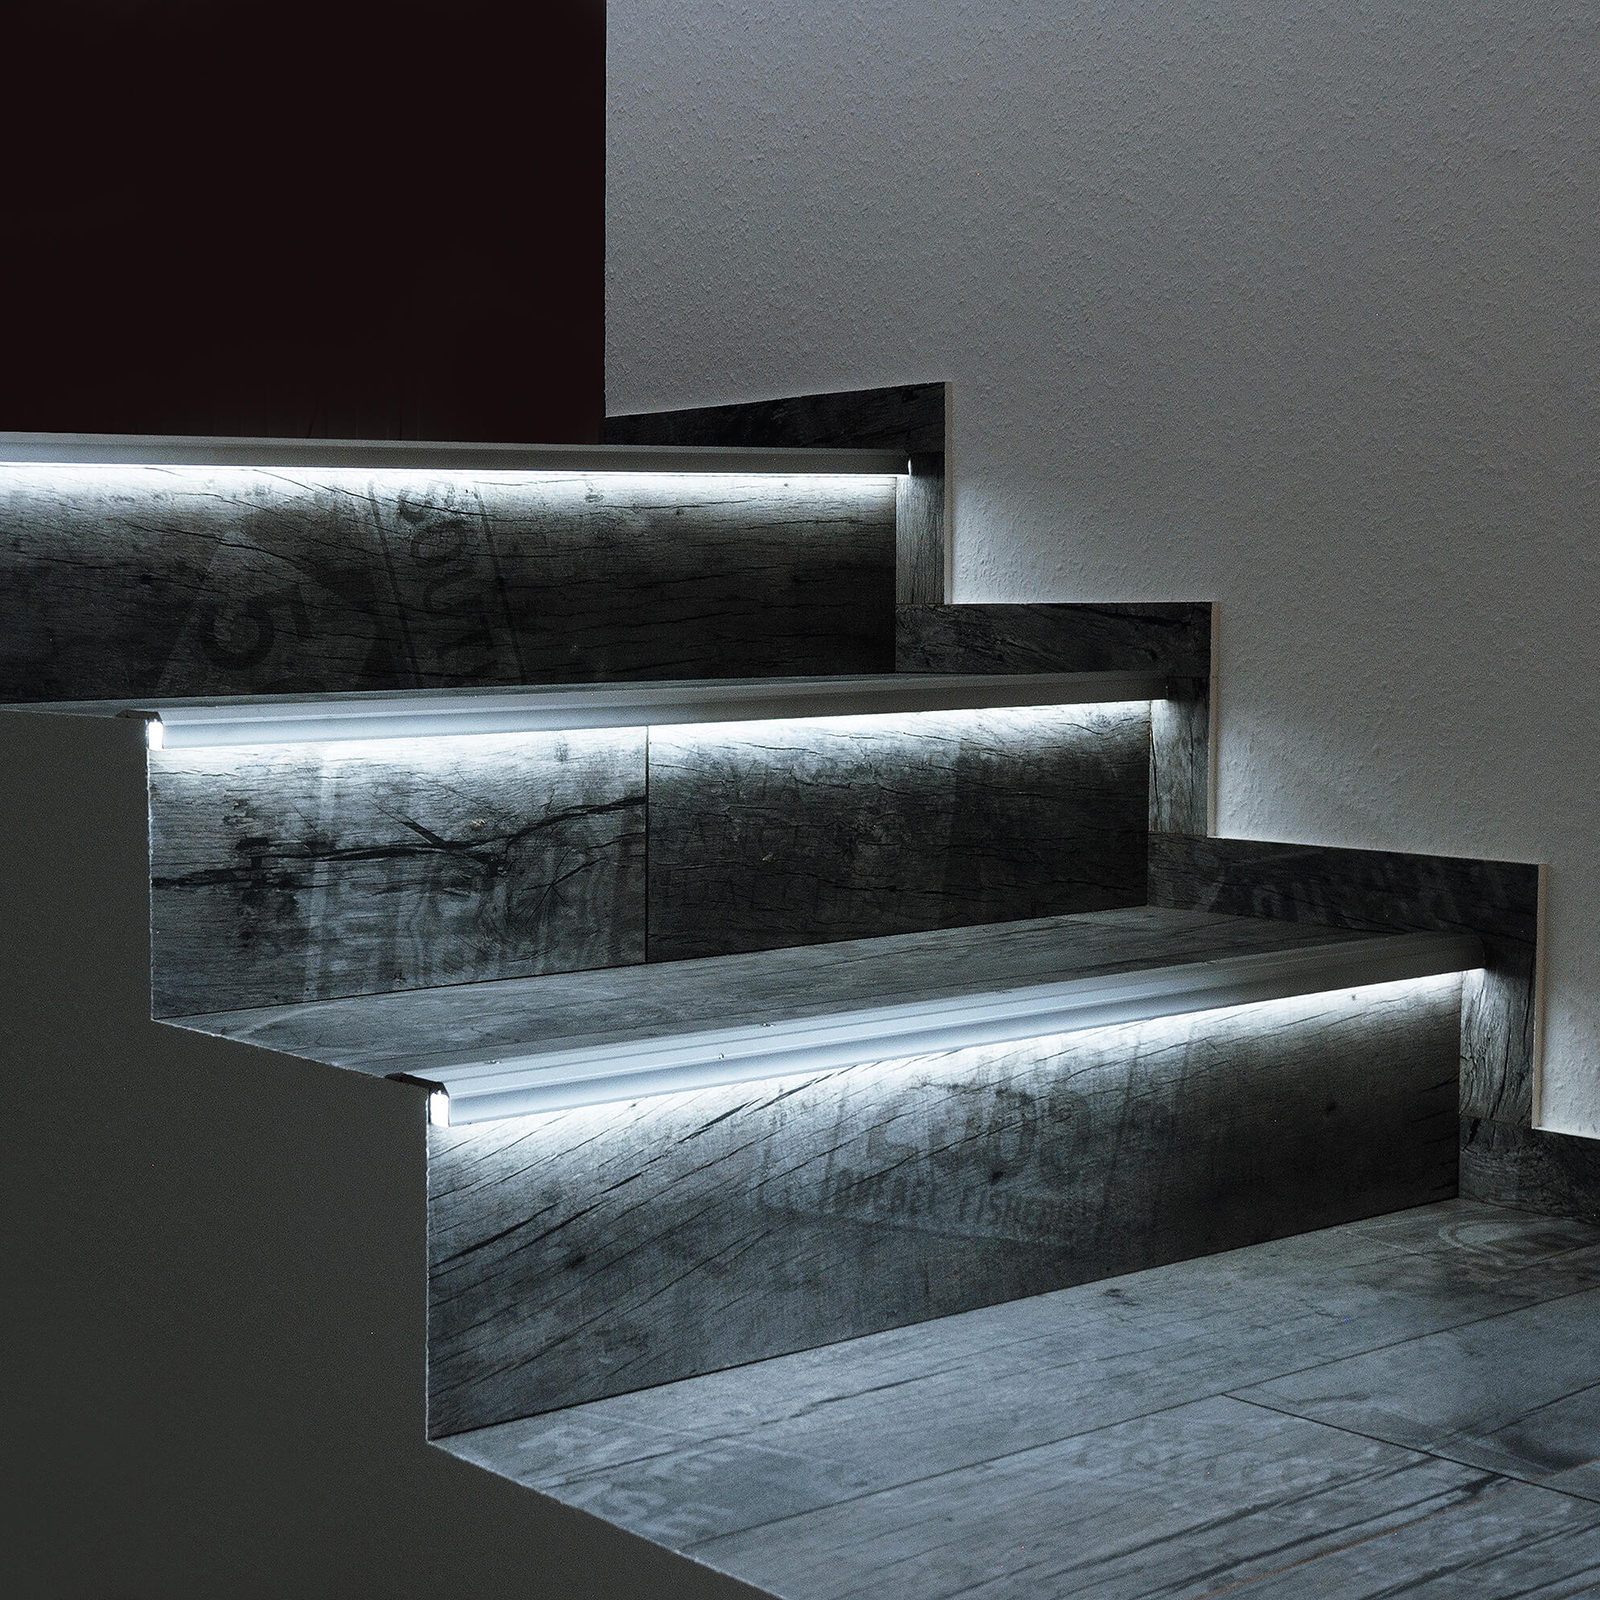 "Aluminium profile anti-slip light 90 degrees for steps, stairs ""Step Profile"" profile linear led strips"